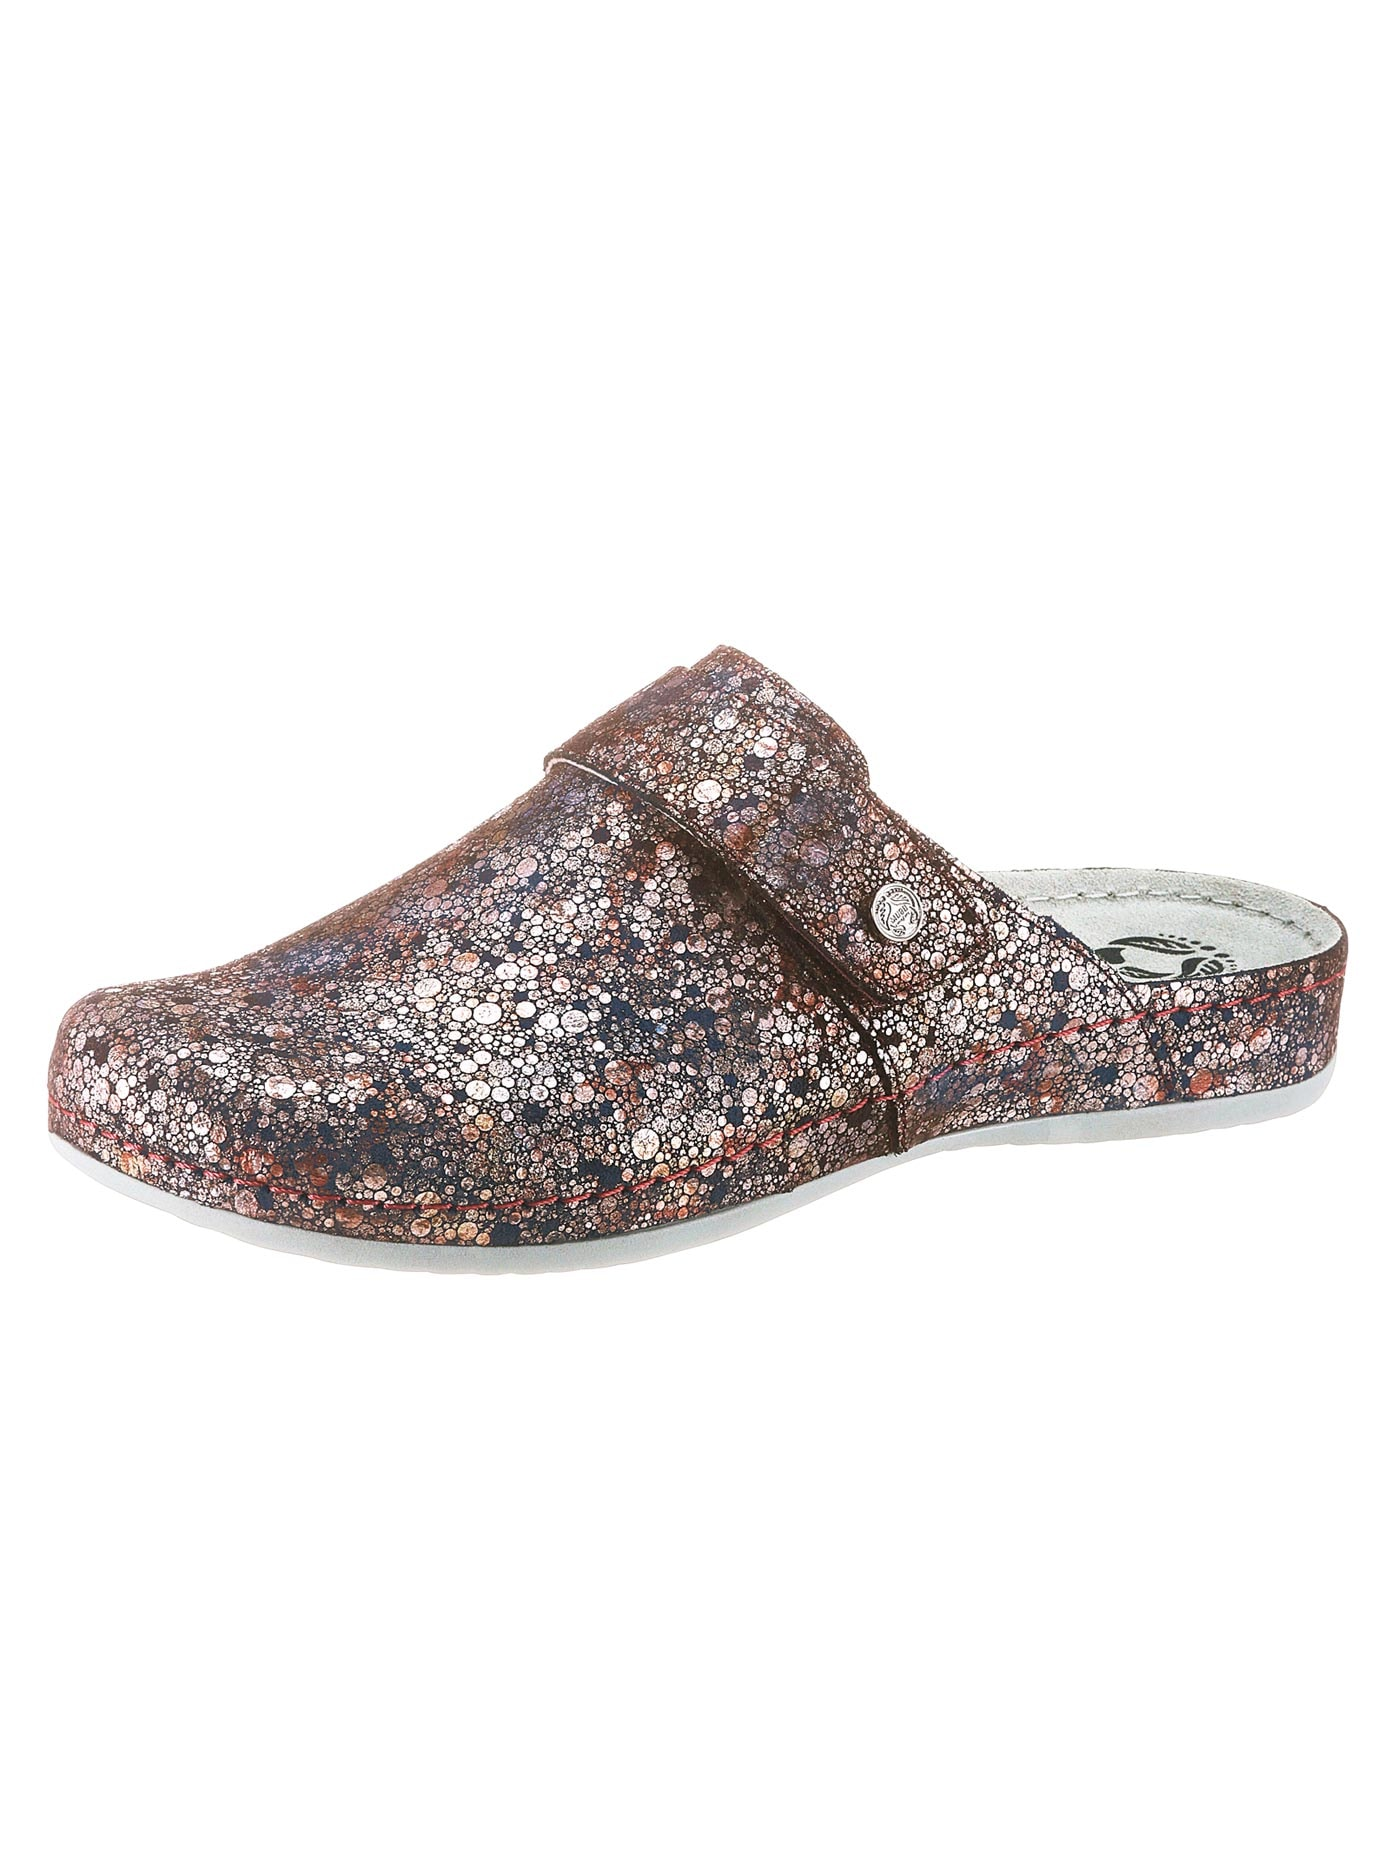 Mubb Clogs in Metallic-Optik | Schuhe > Clogs & Pantoletten > Clogs | Mubb